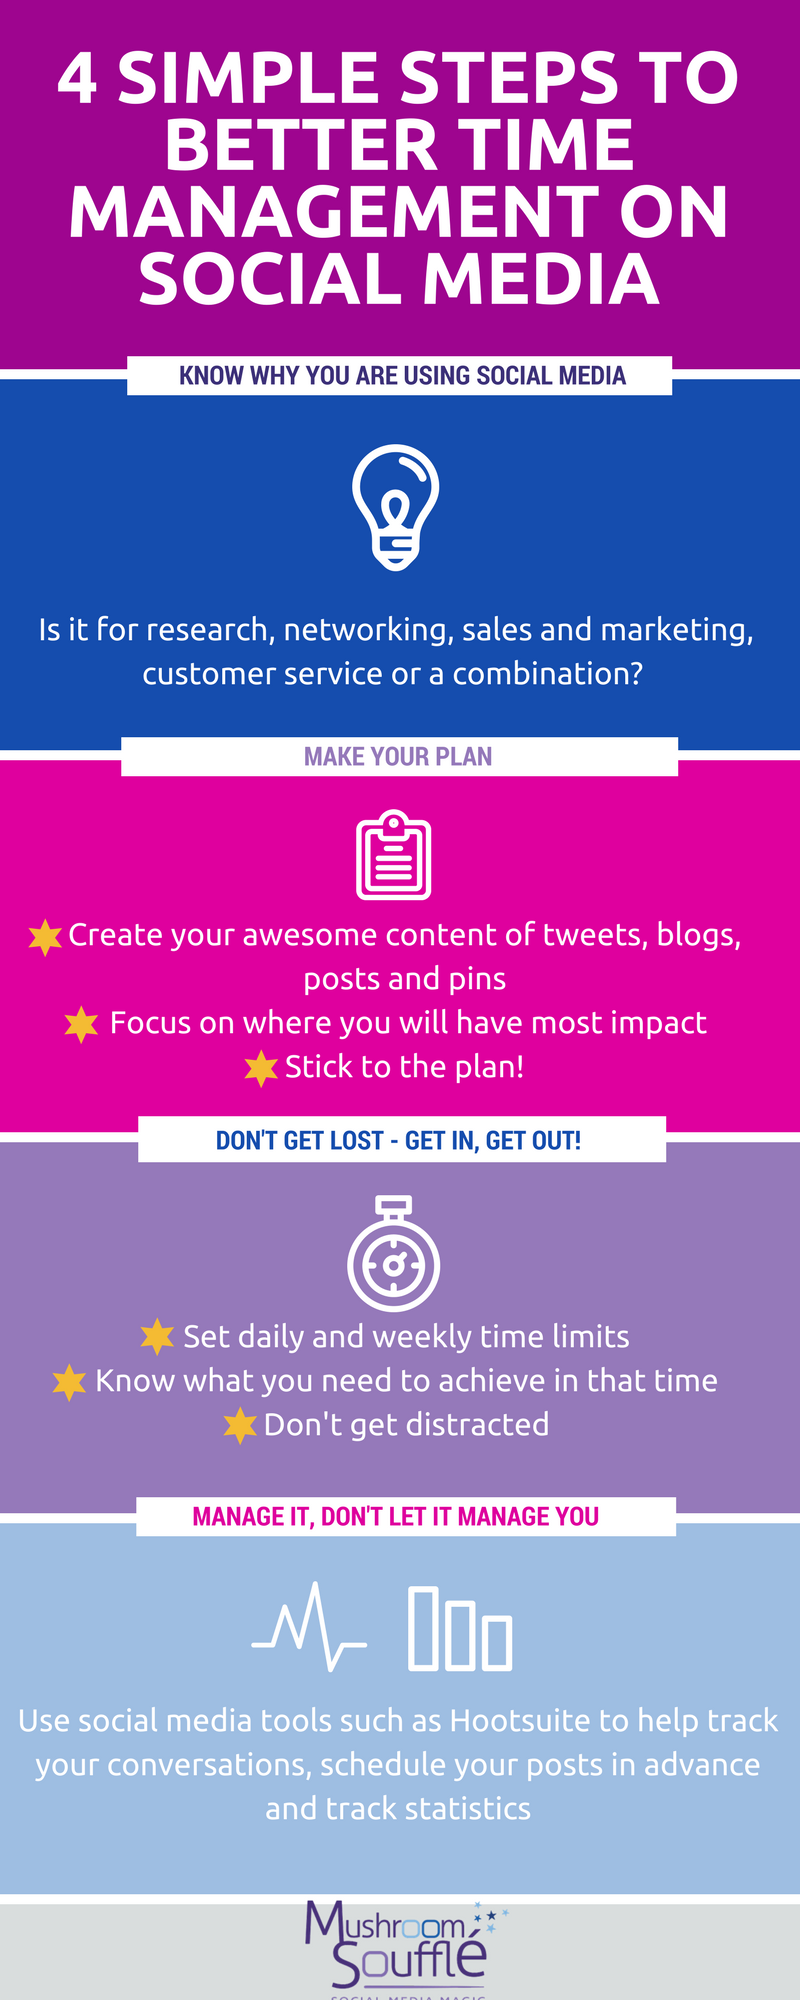 4 Simple Steps to Better Time Management on Social Media